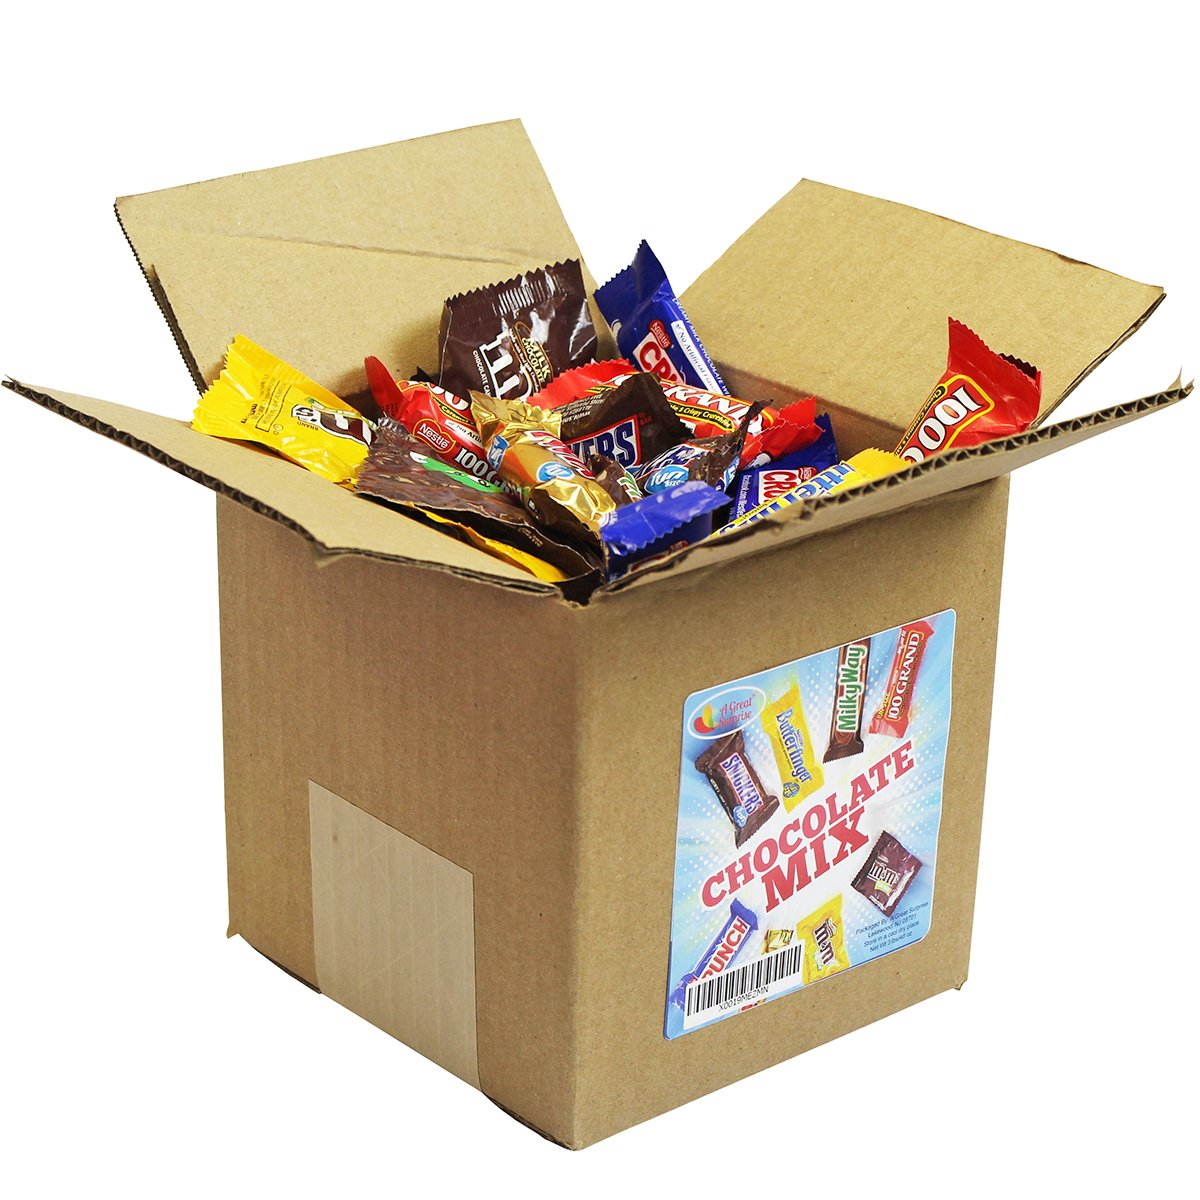 Chocolate Variety Pack - Fun Size Candy - All Your Favorite Chocolate Bars Including M&M, Snickers, Twix and More In 6x6x6 Bulk Box, 3.2 LB by A Great Surprise (Image #2)